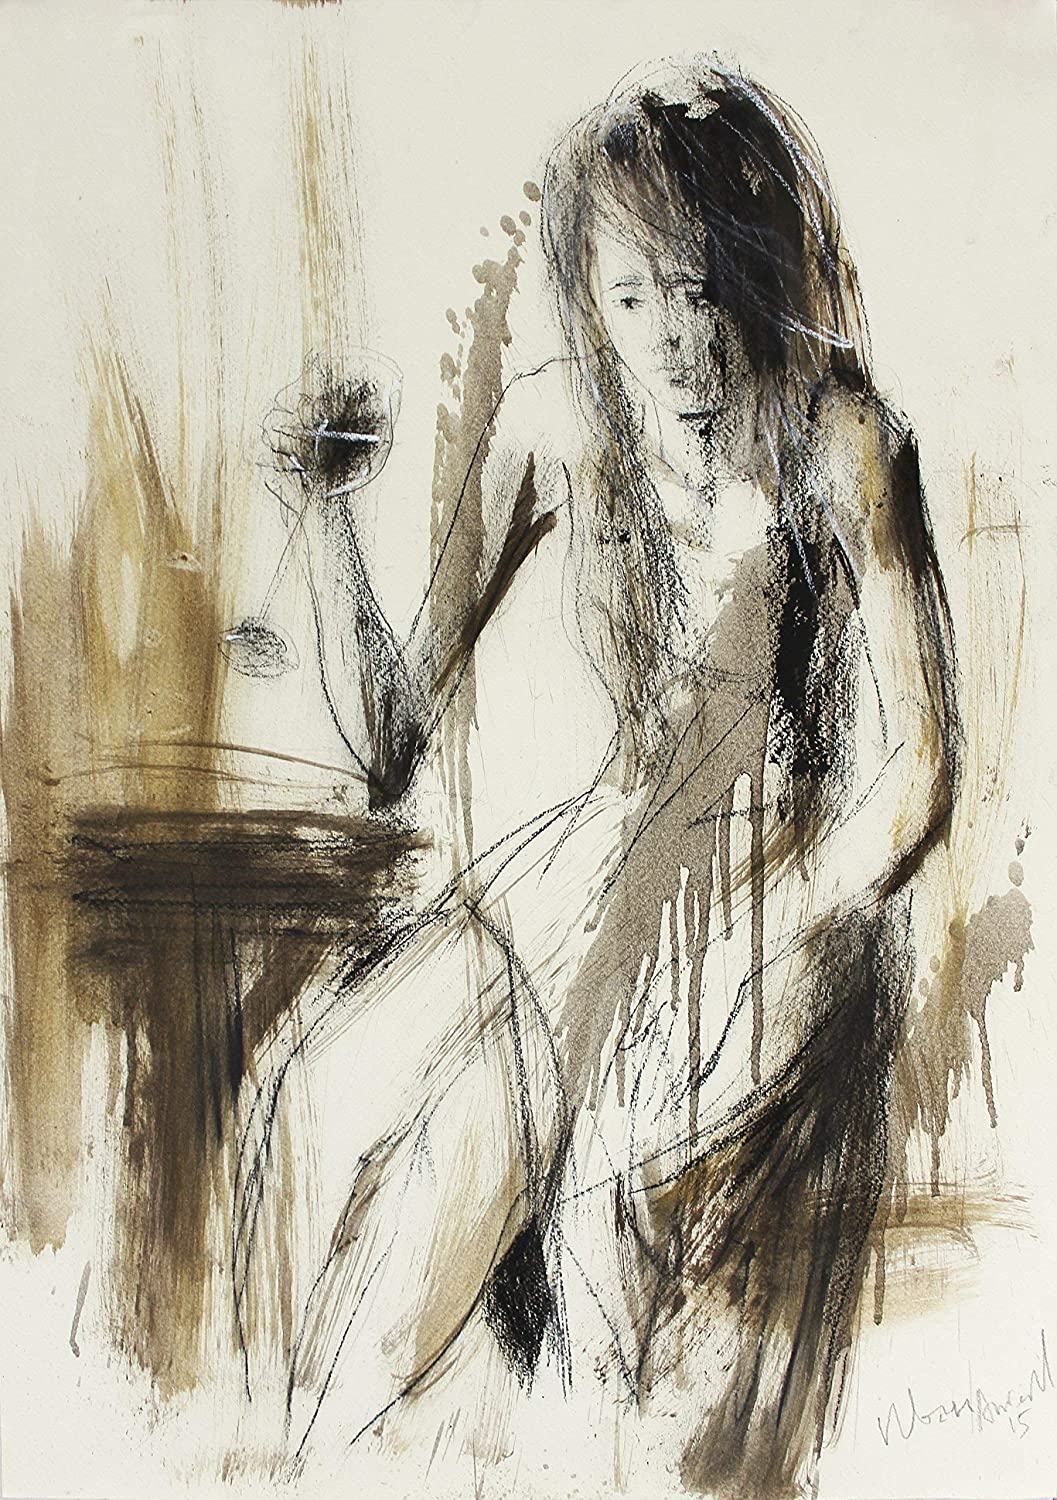 Woman drawing Print, Glass of wine Wall Art, Female Figure Sketch Poster, Giclee Reproduction